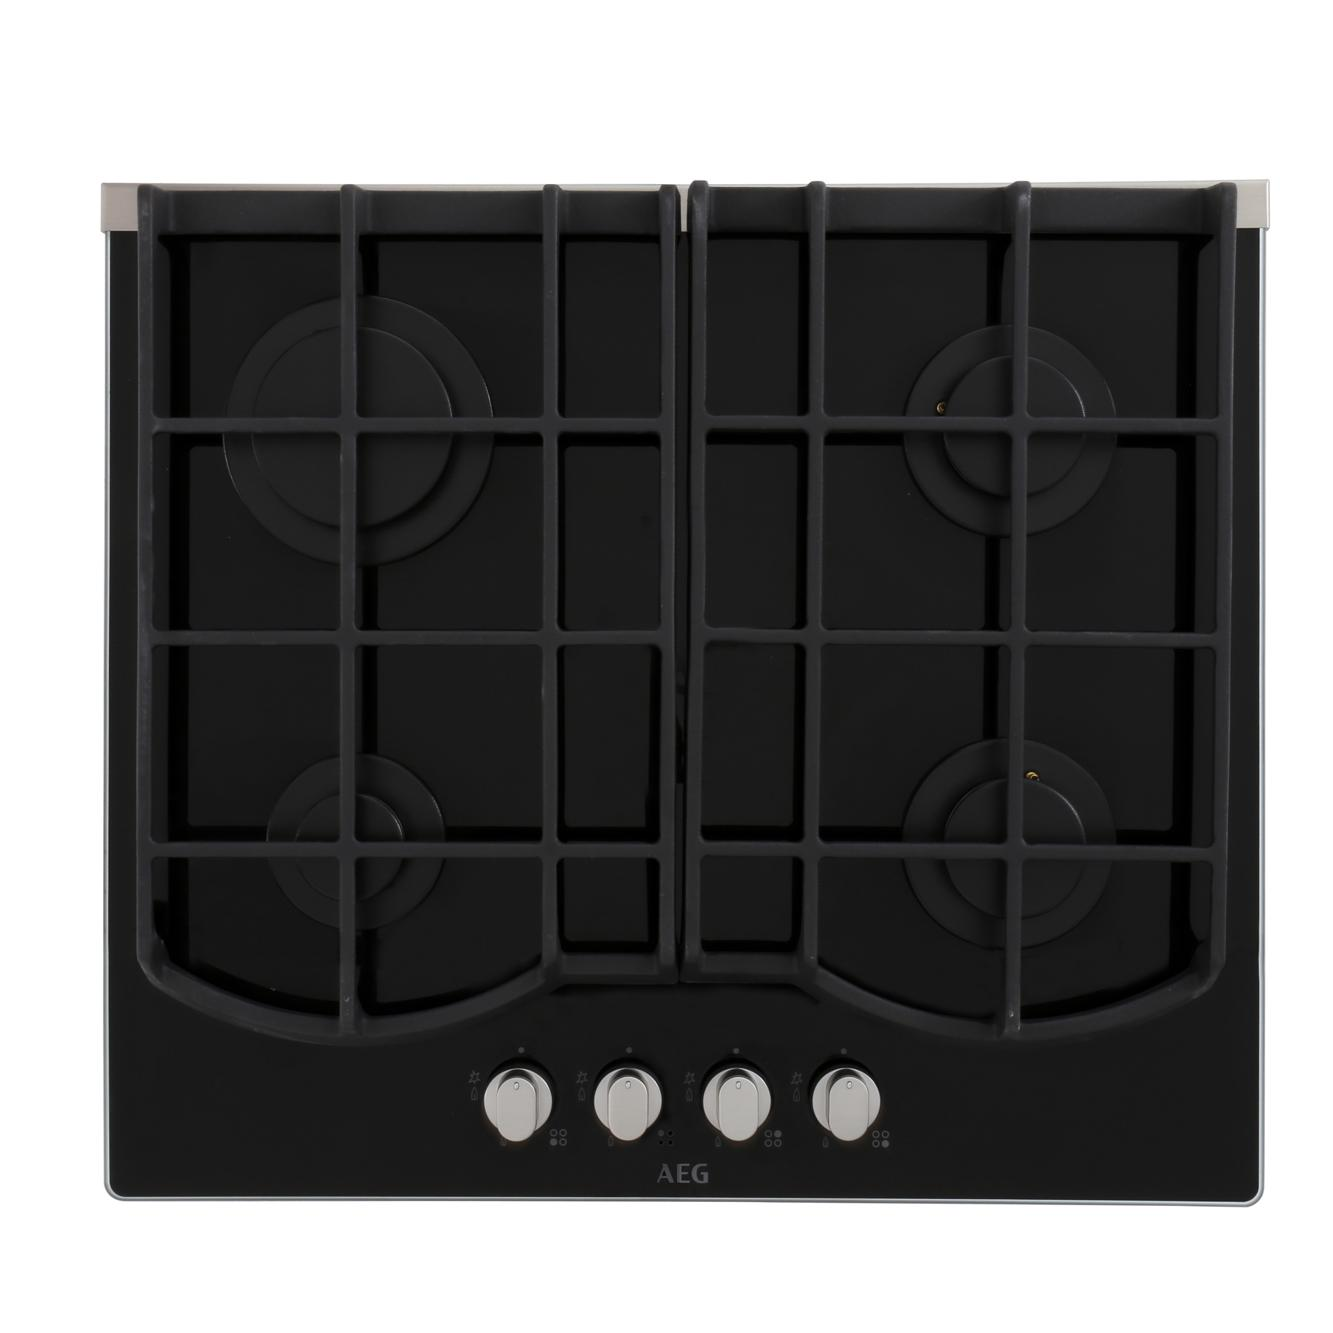 AEG HG653431NB 4 Burner Gas Hob